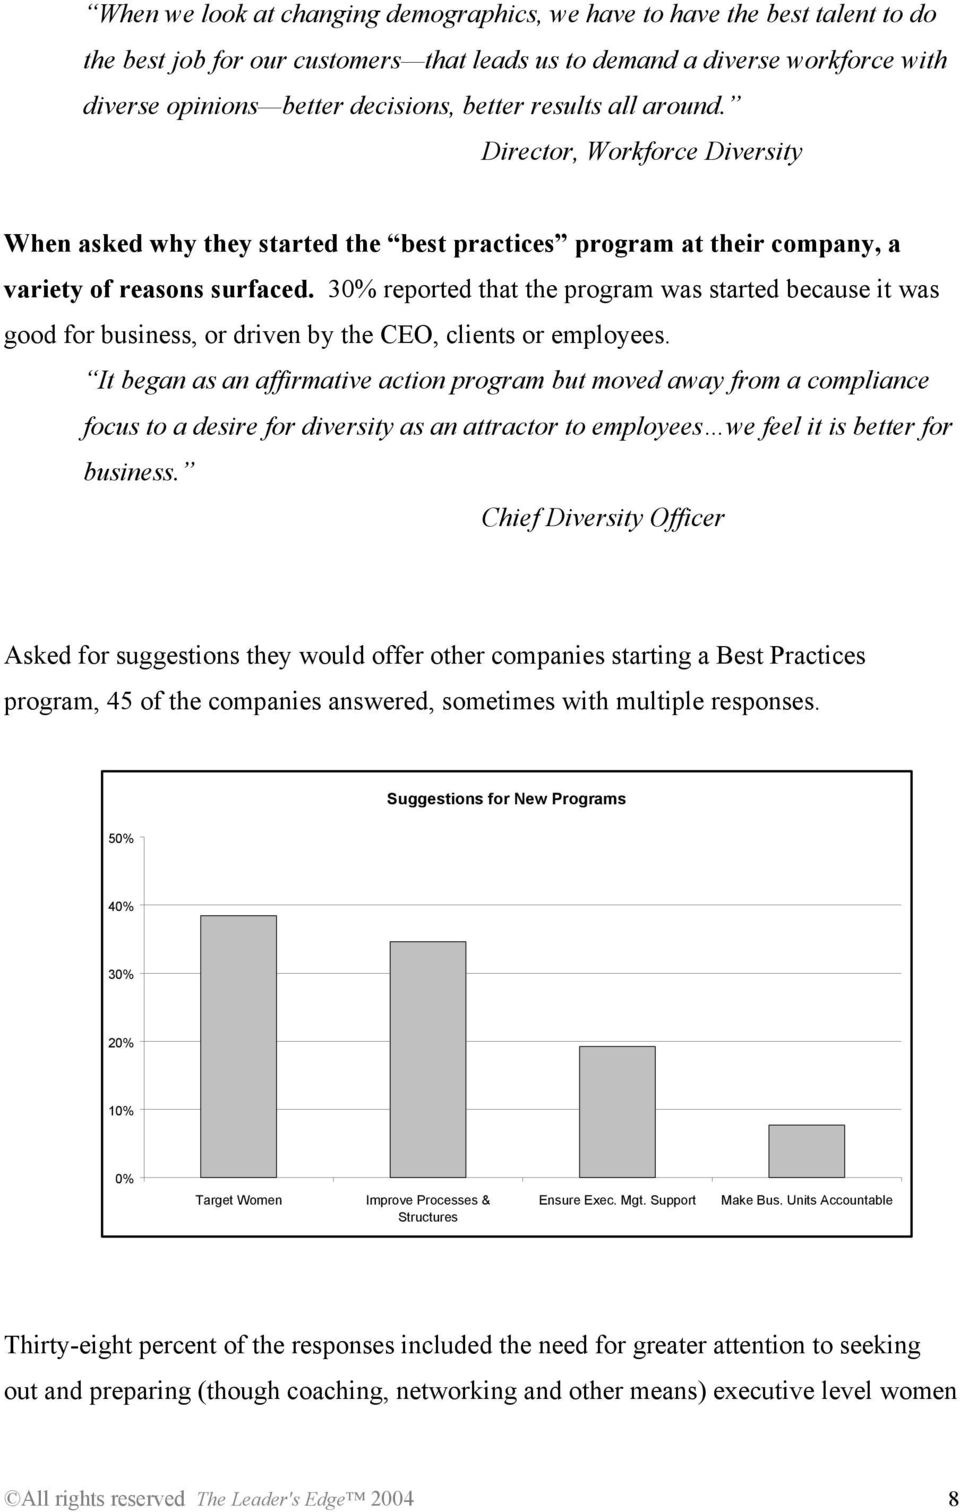 30% reported that the program was started because it was good for business, or driven by the CEO, clients or employees.